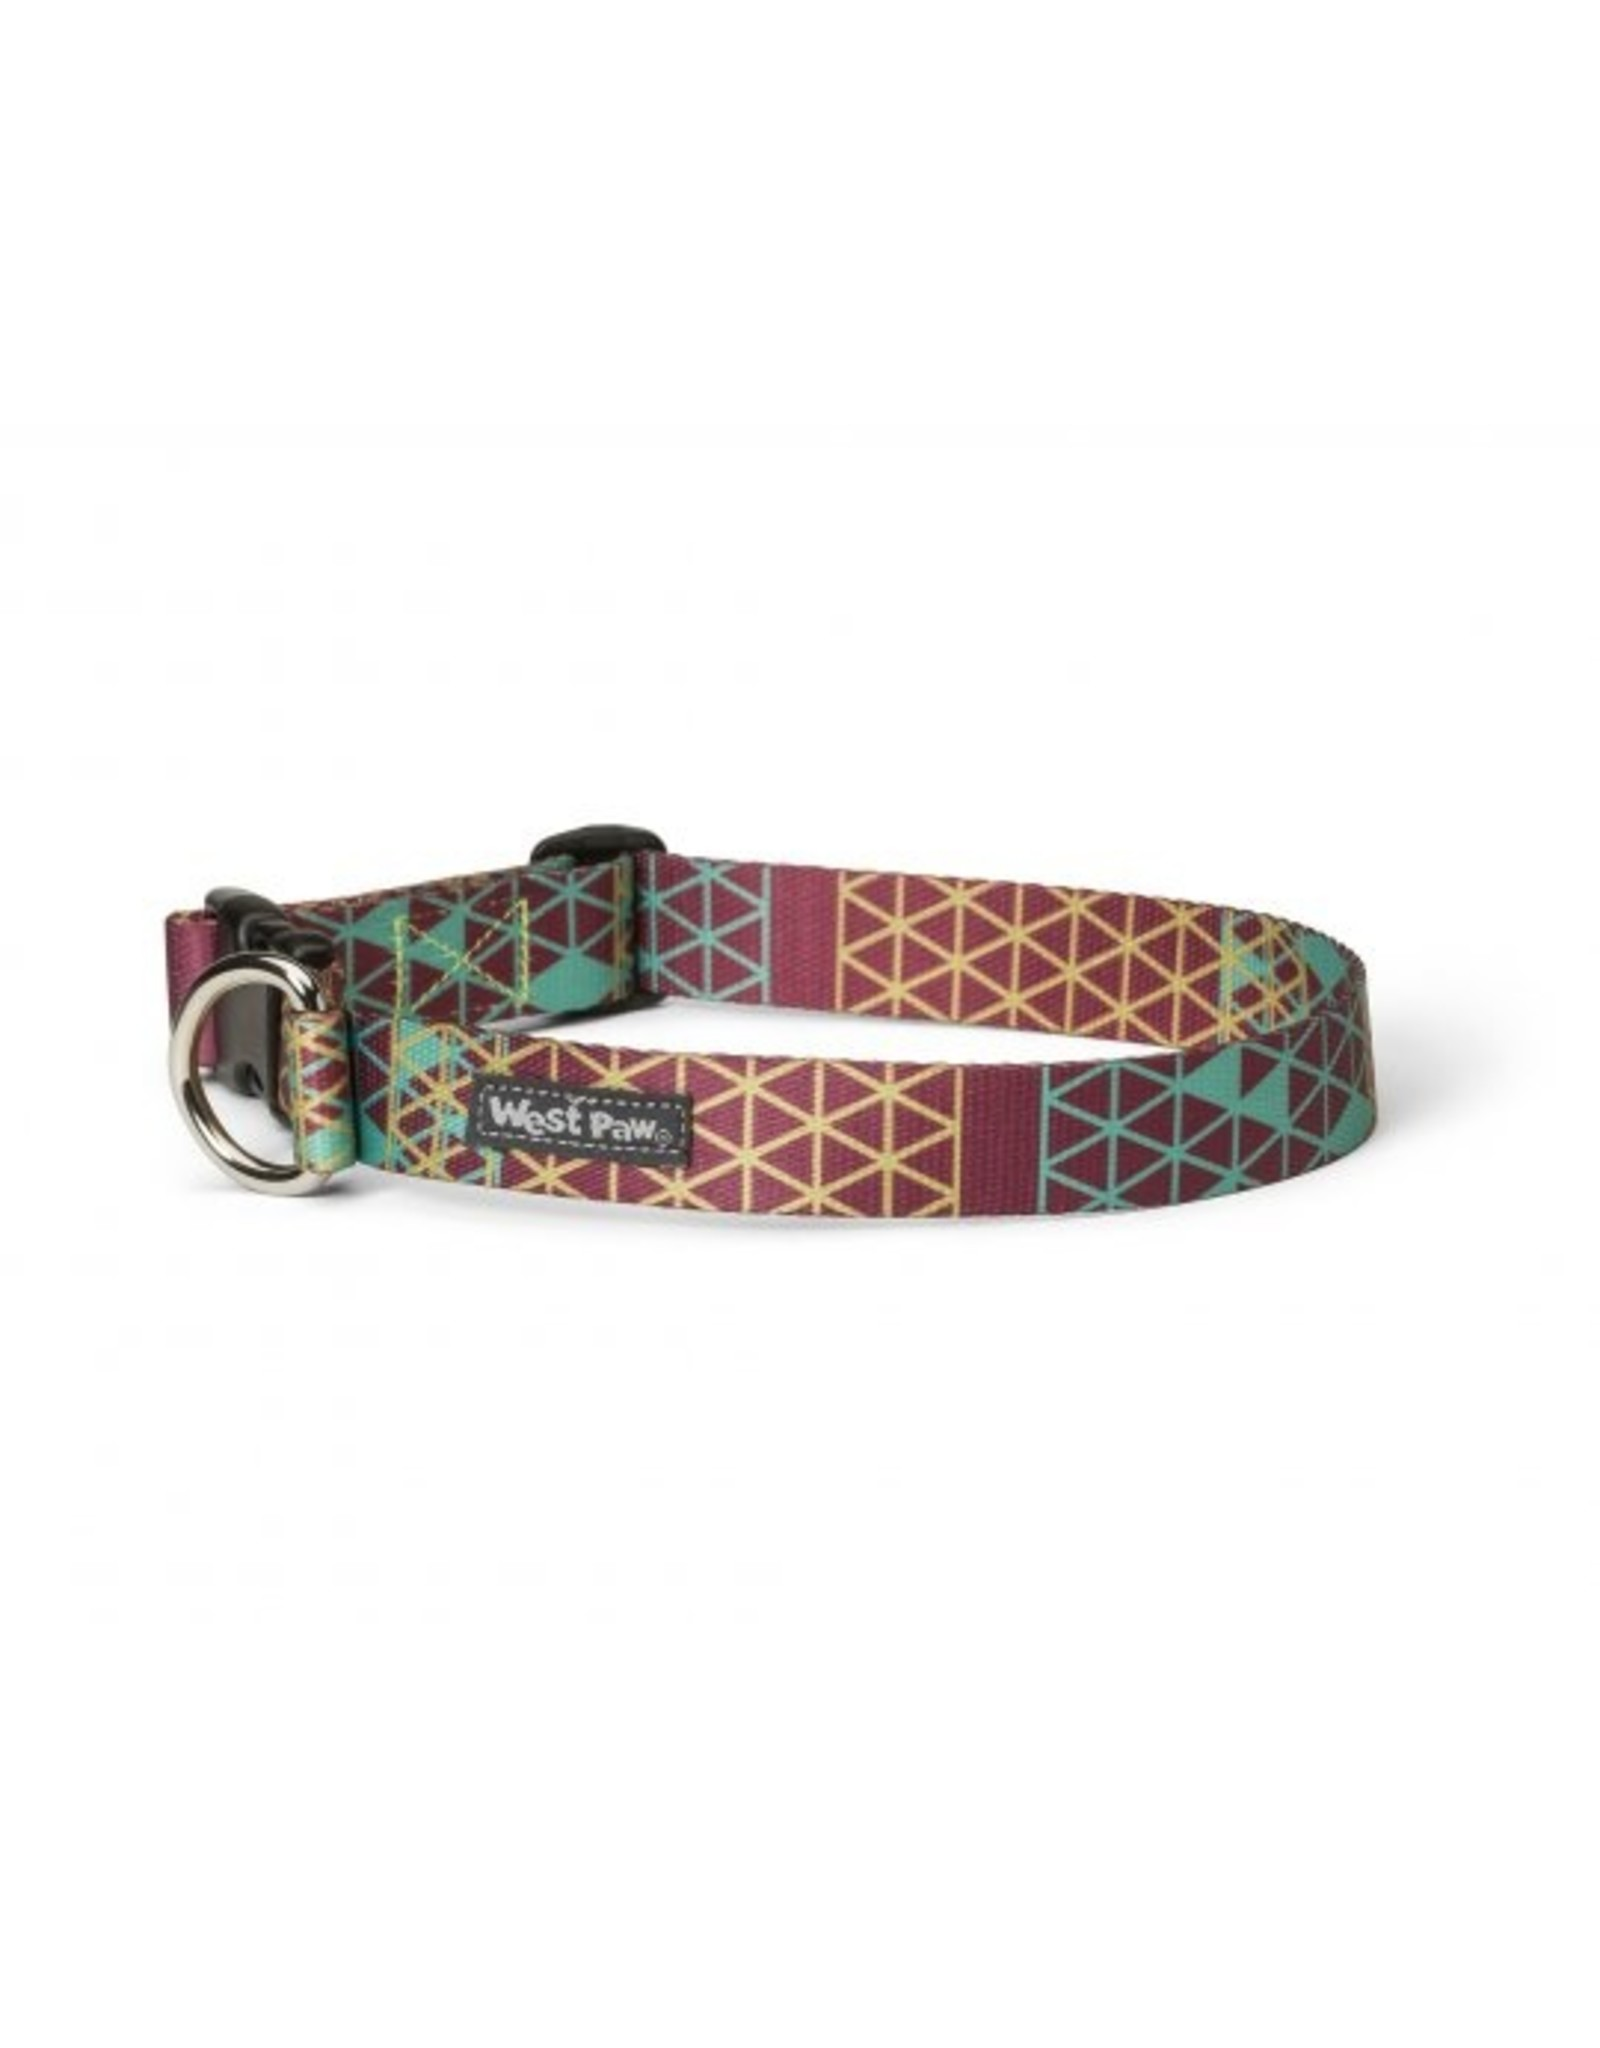 West Paw Designs Westpaw: Outings™ Collar Small Grid Mocha